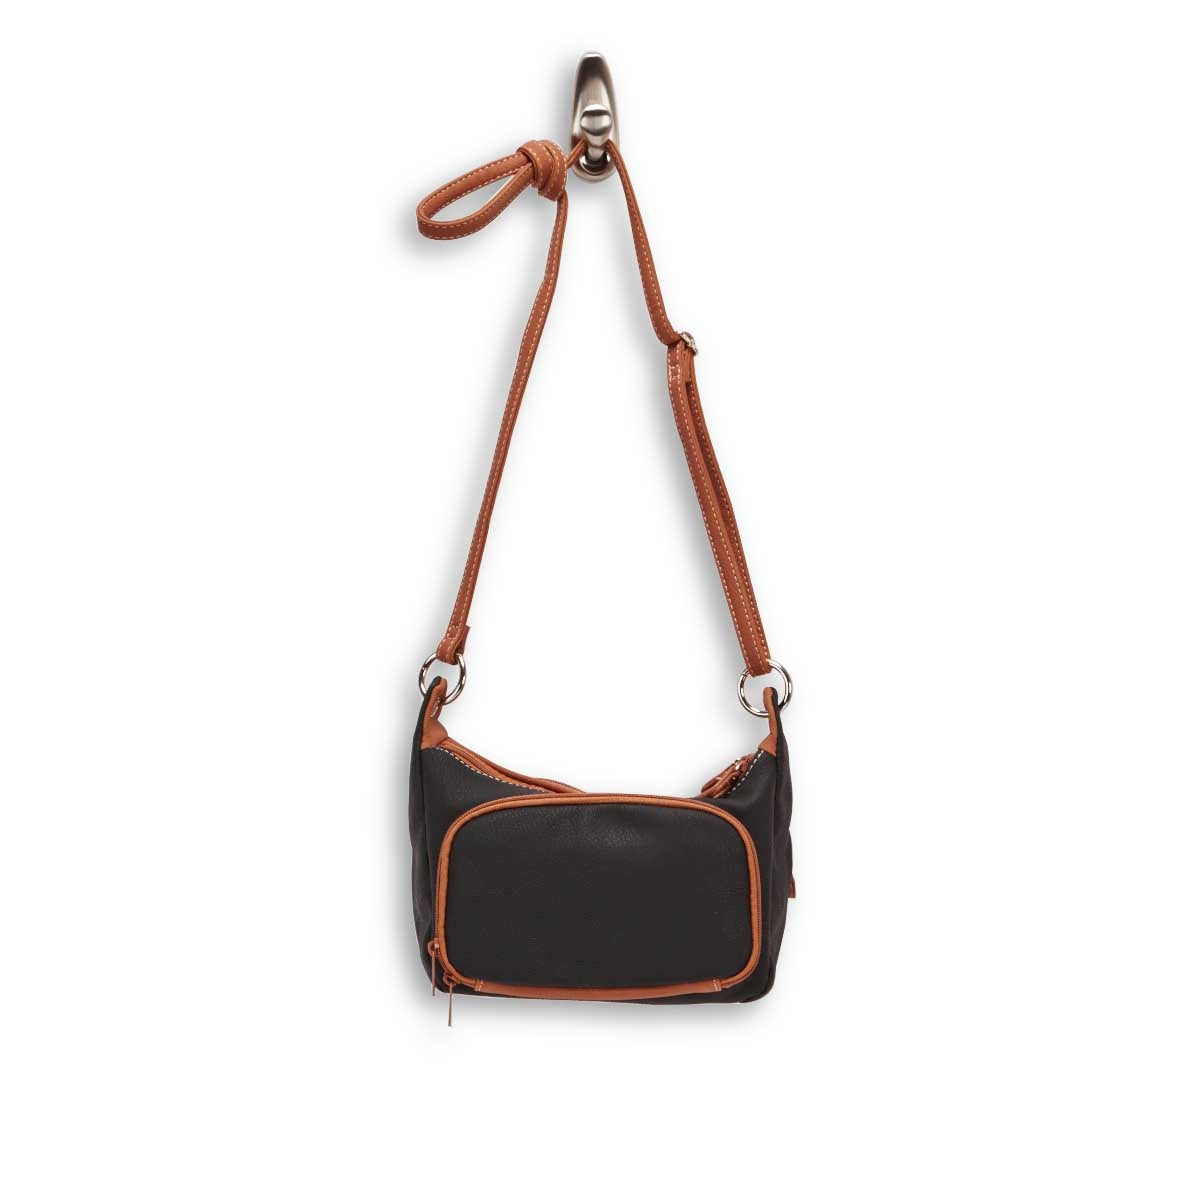 Lds Palmer blk/cgnc cross body bag